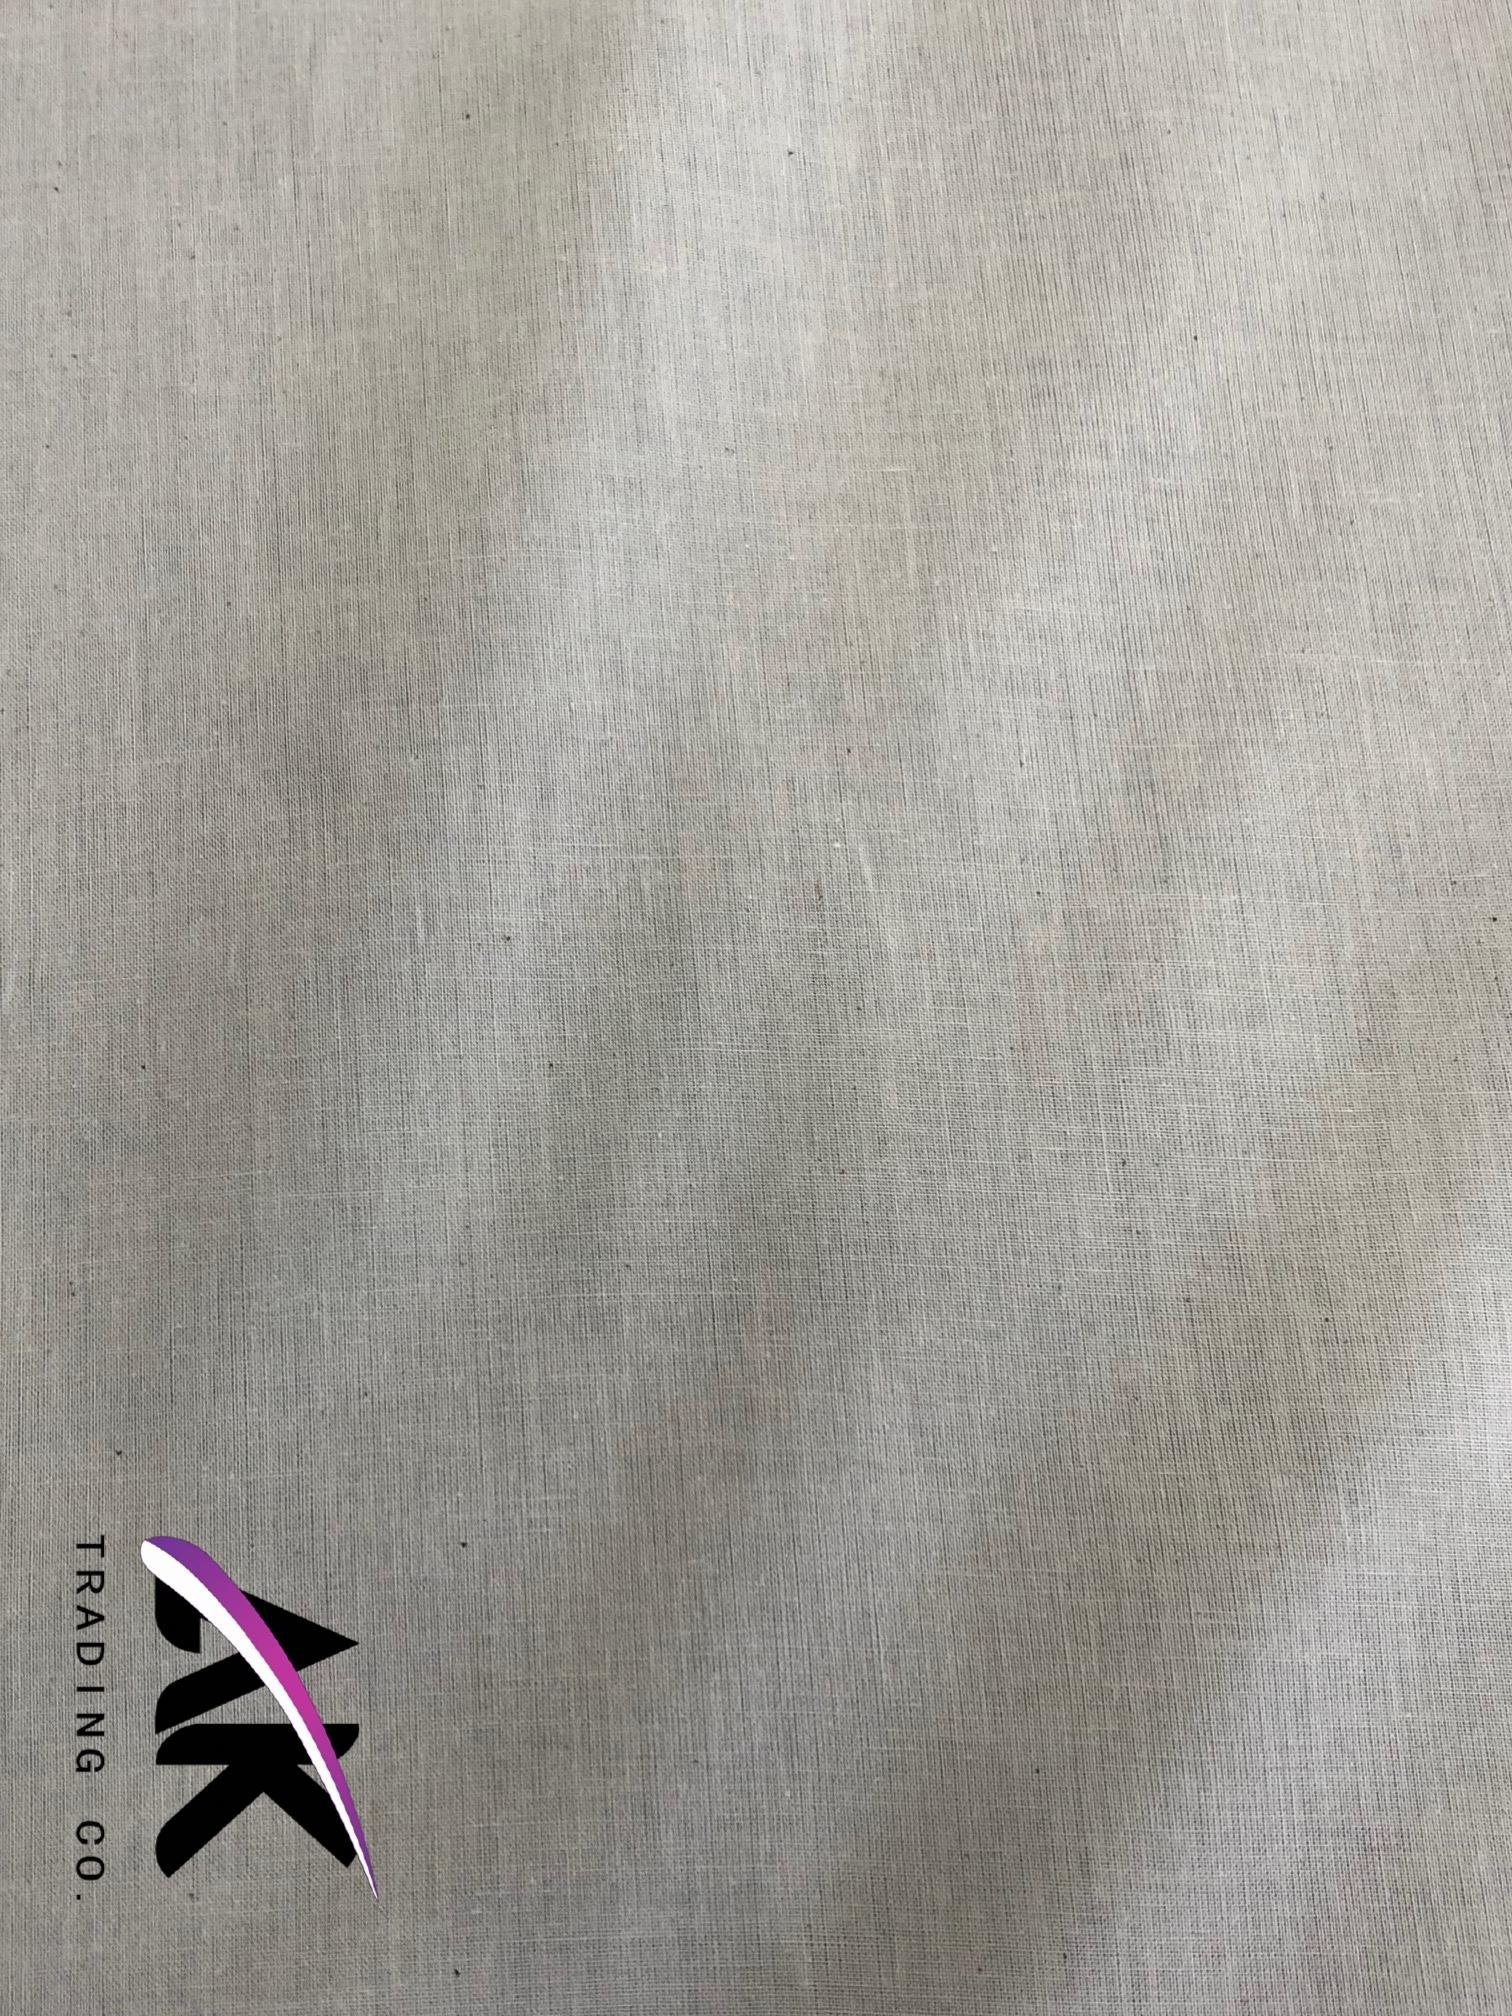 AK Trading 60'' Wide Natural Muslin Fabric, 100% Cotton Fabric, Unbleached 50 Yards by AK TRADING CO. (Image #4)